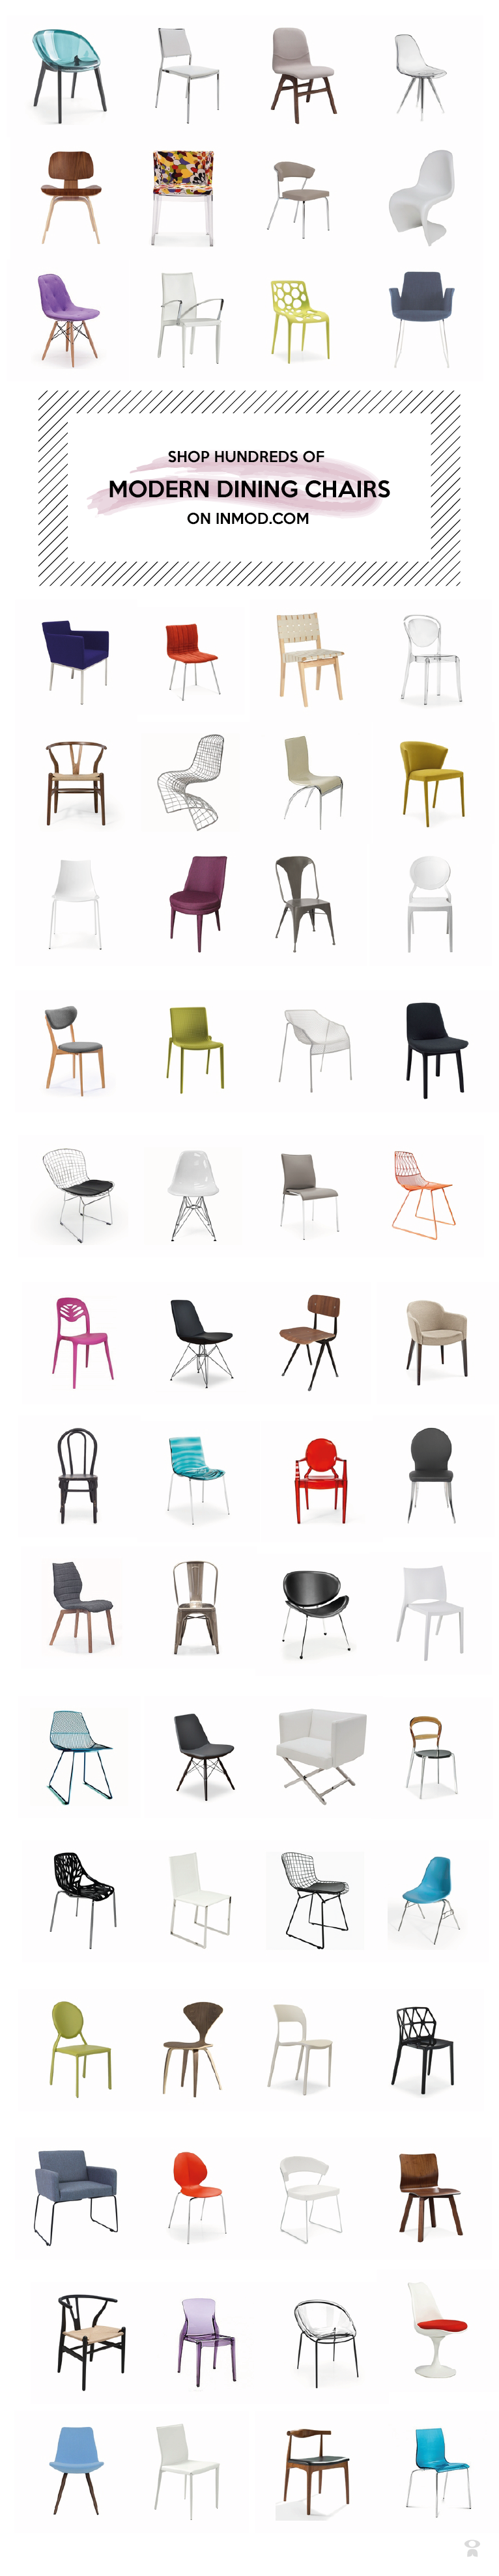 Shop hundreds of modern dining and side chairs for your space on inmod